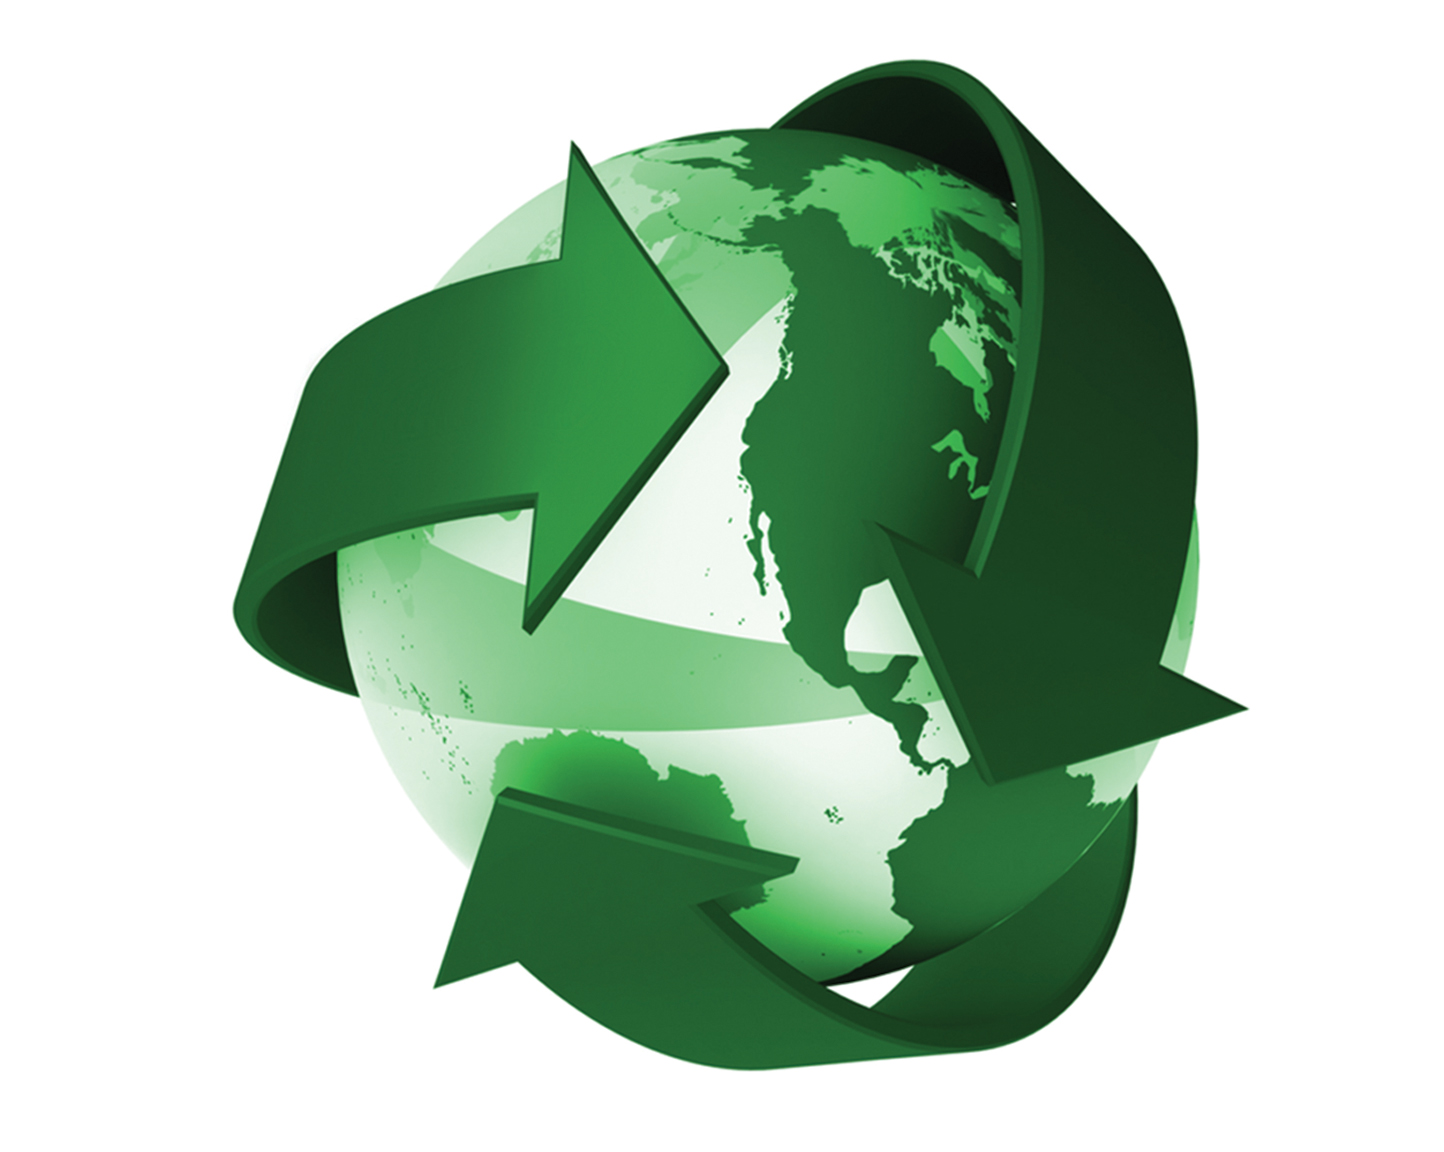 3D green recycle globe graphic